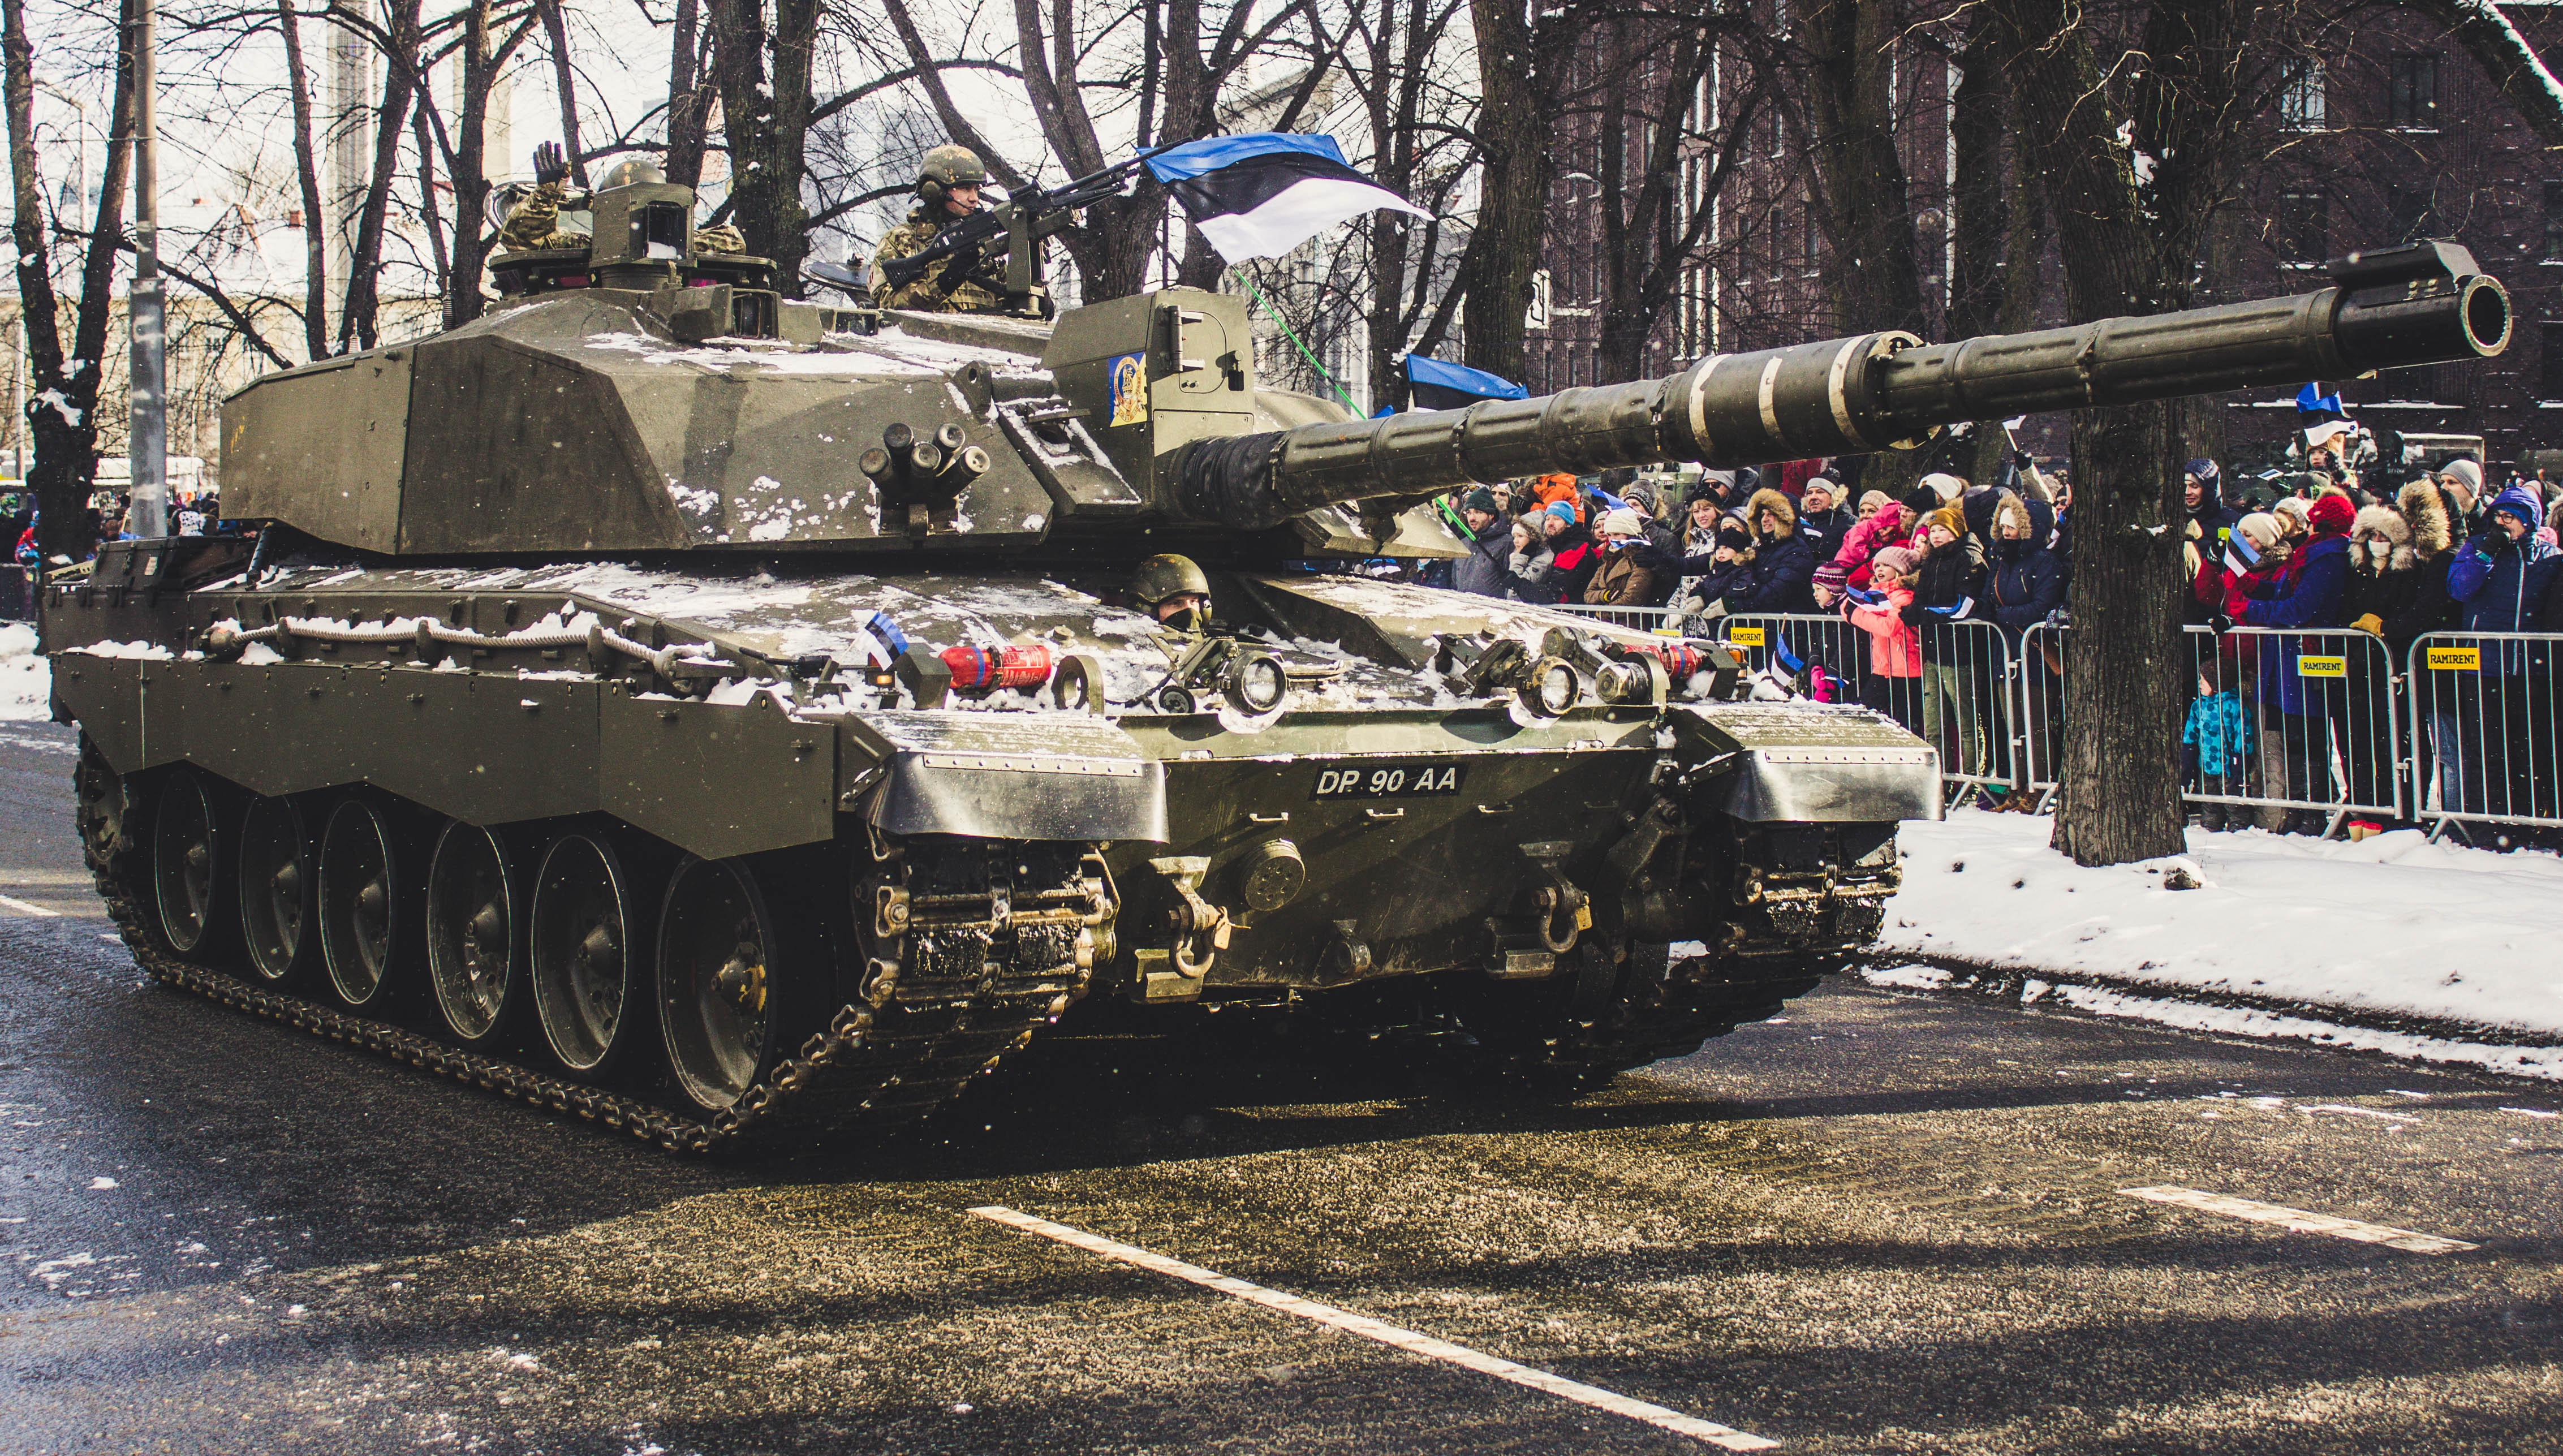 Soldier Tank on Road, Armed, Parade, Wear, Weapons, HQ Photo